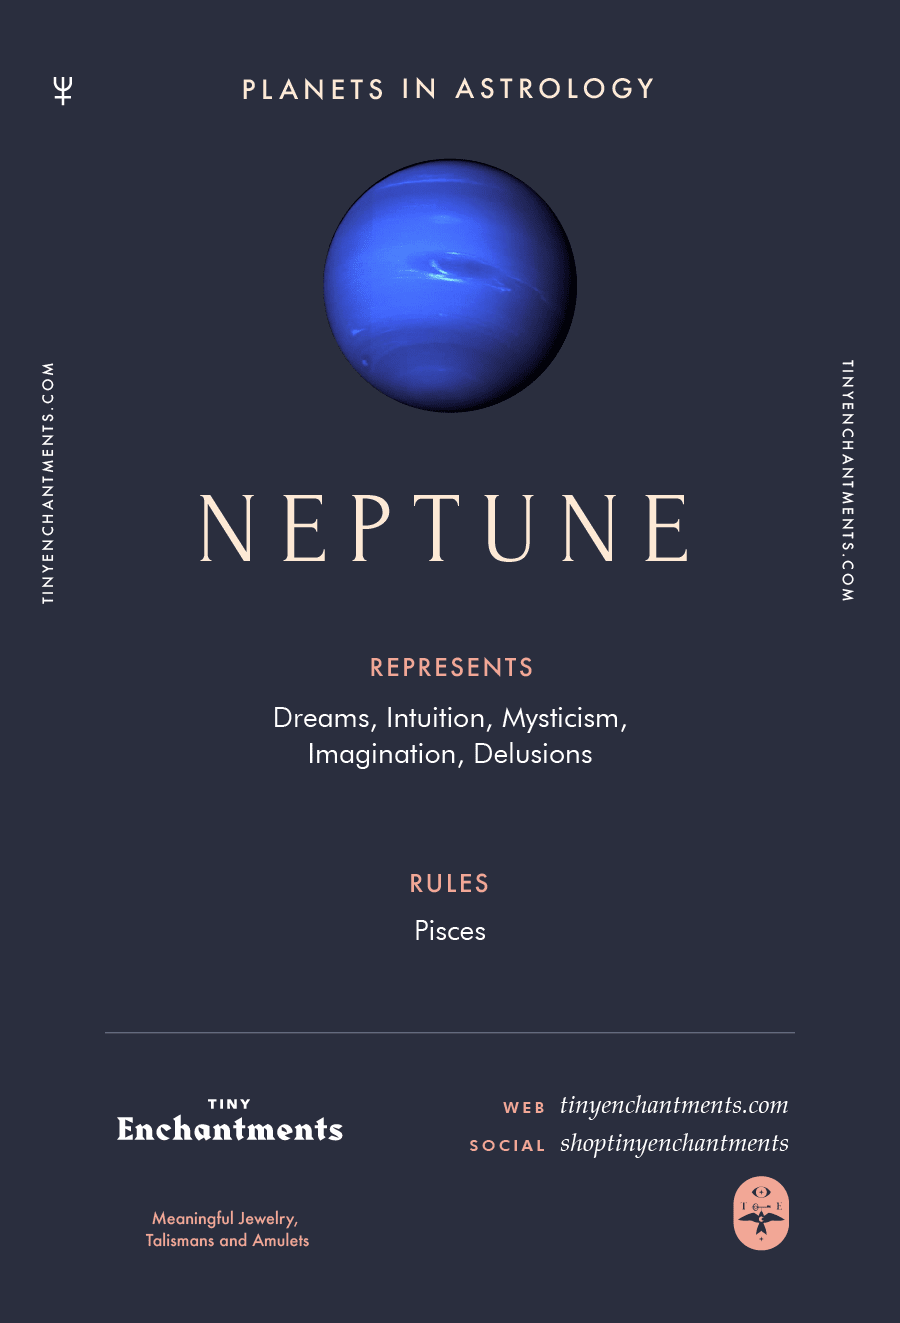 Neptune Sign in Astrology - Planet Meaning, Zodiac, Symbolism, Characteristics Infographic